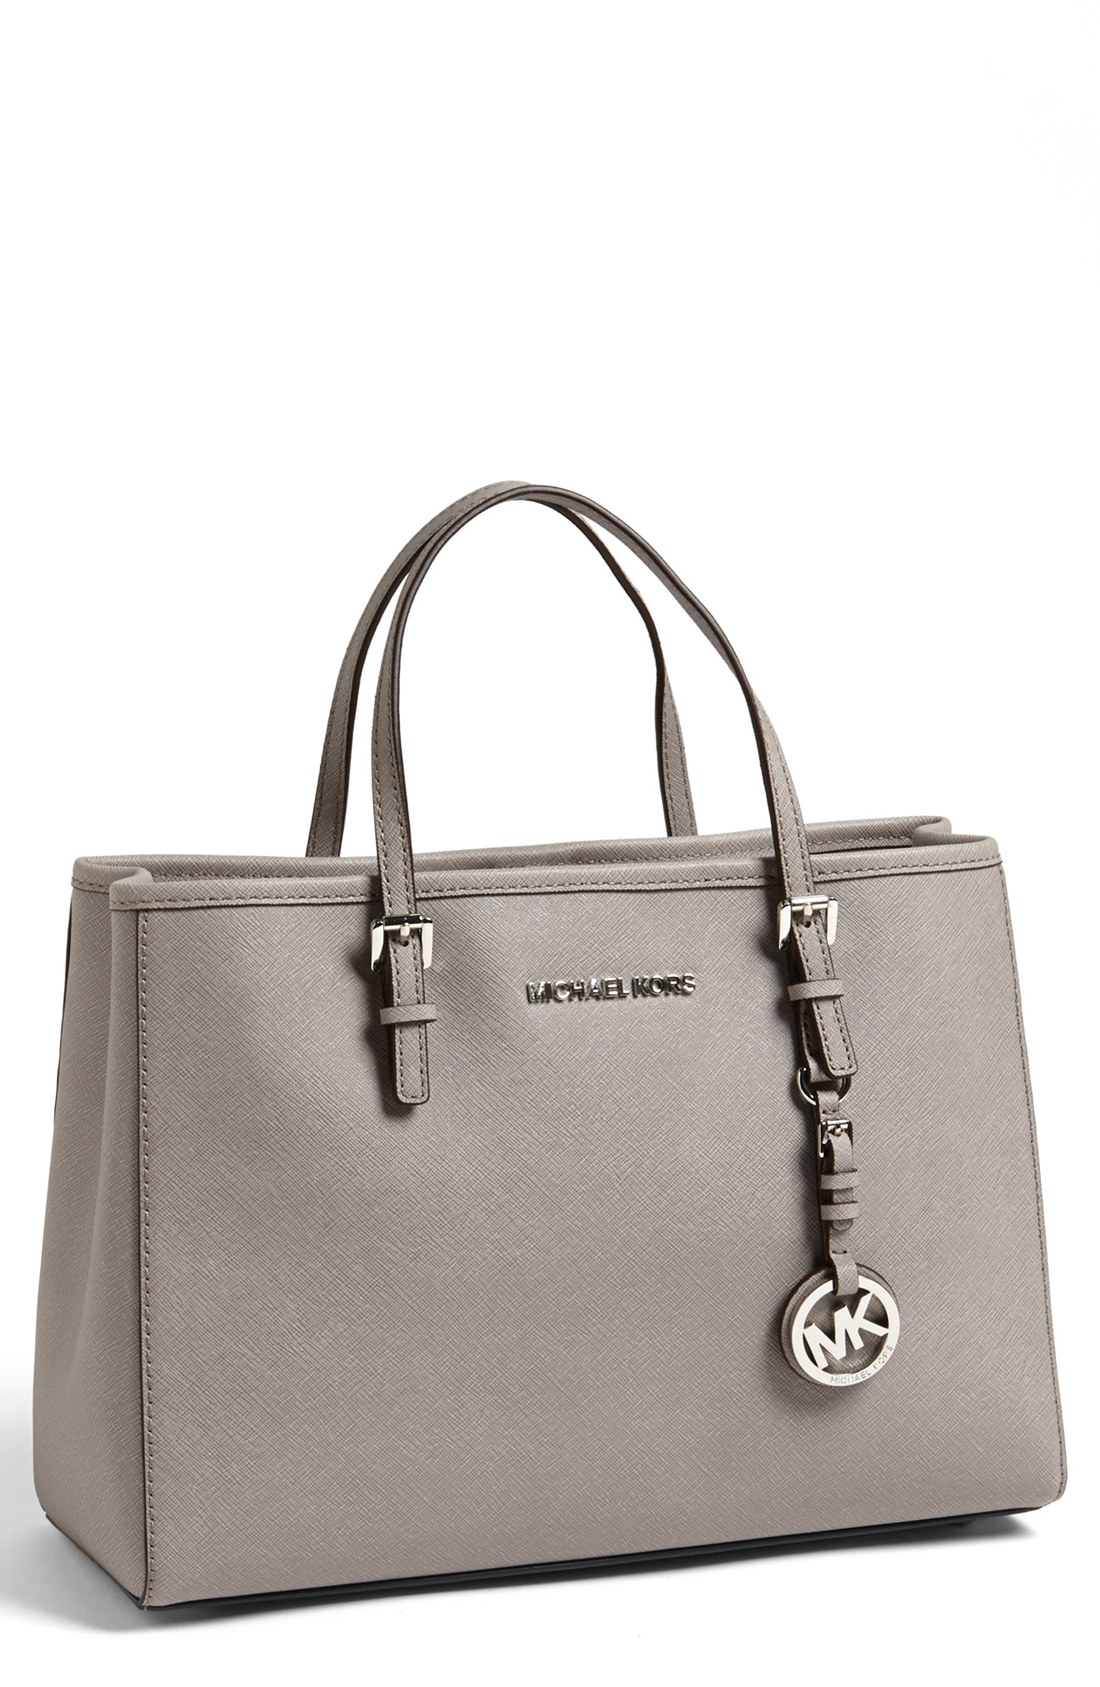 39971e216d5c88 Michael michael kors Jet Set Medium Saffiano Leather Tote in Gray | Lyst